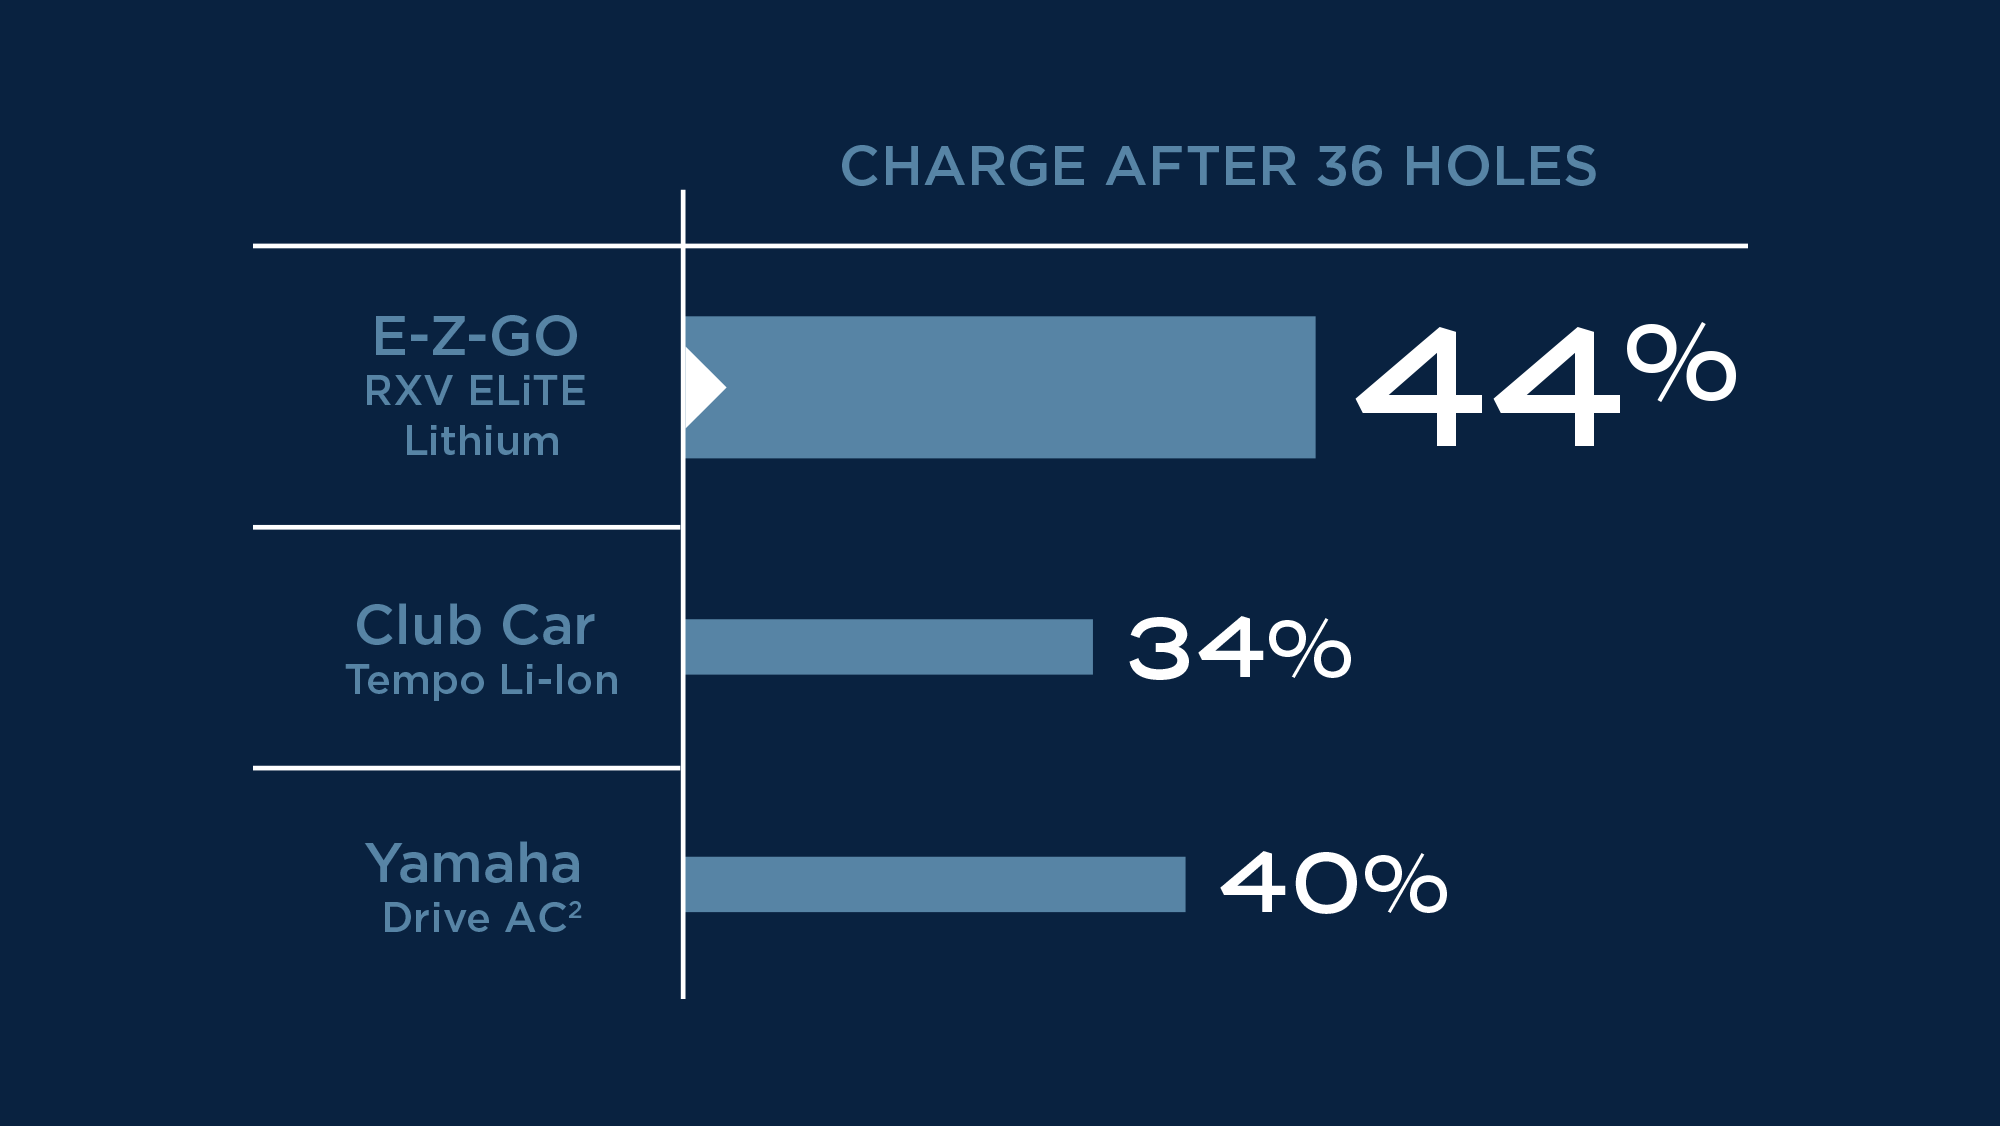 Charge after 36 holes. E-Z-GO RXV ELiTE Lithium 44%. Club Car Tempo Li-Ion 34%. Yamaha Drive AC 40%.